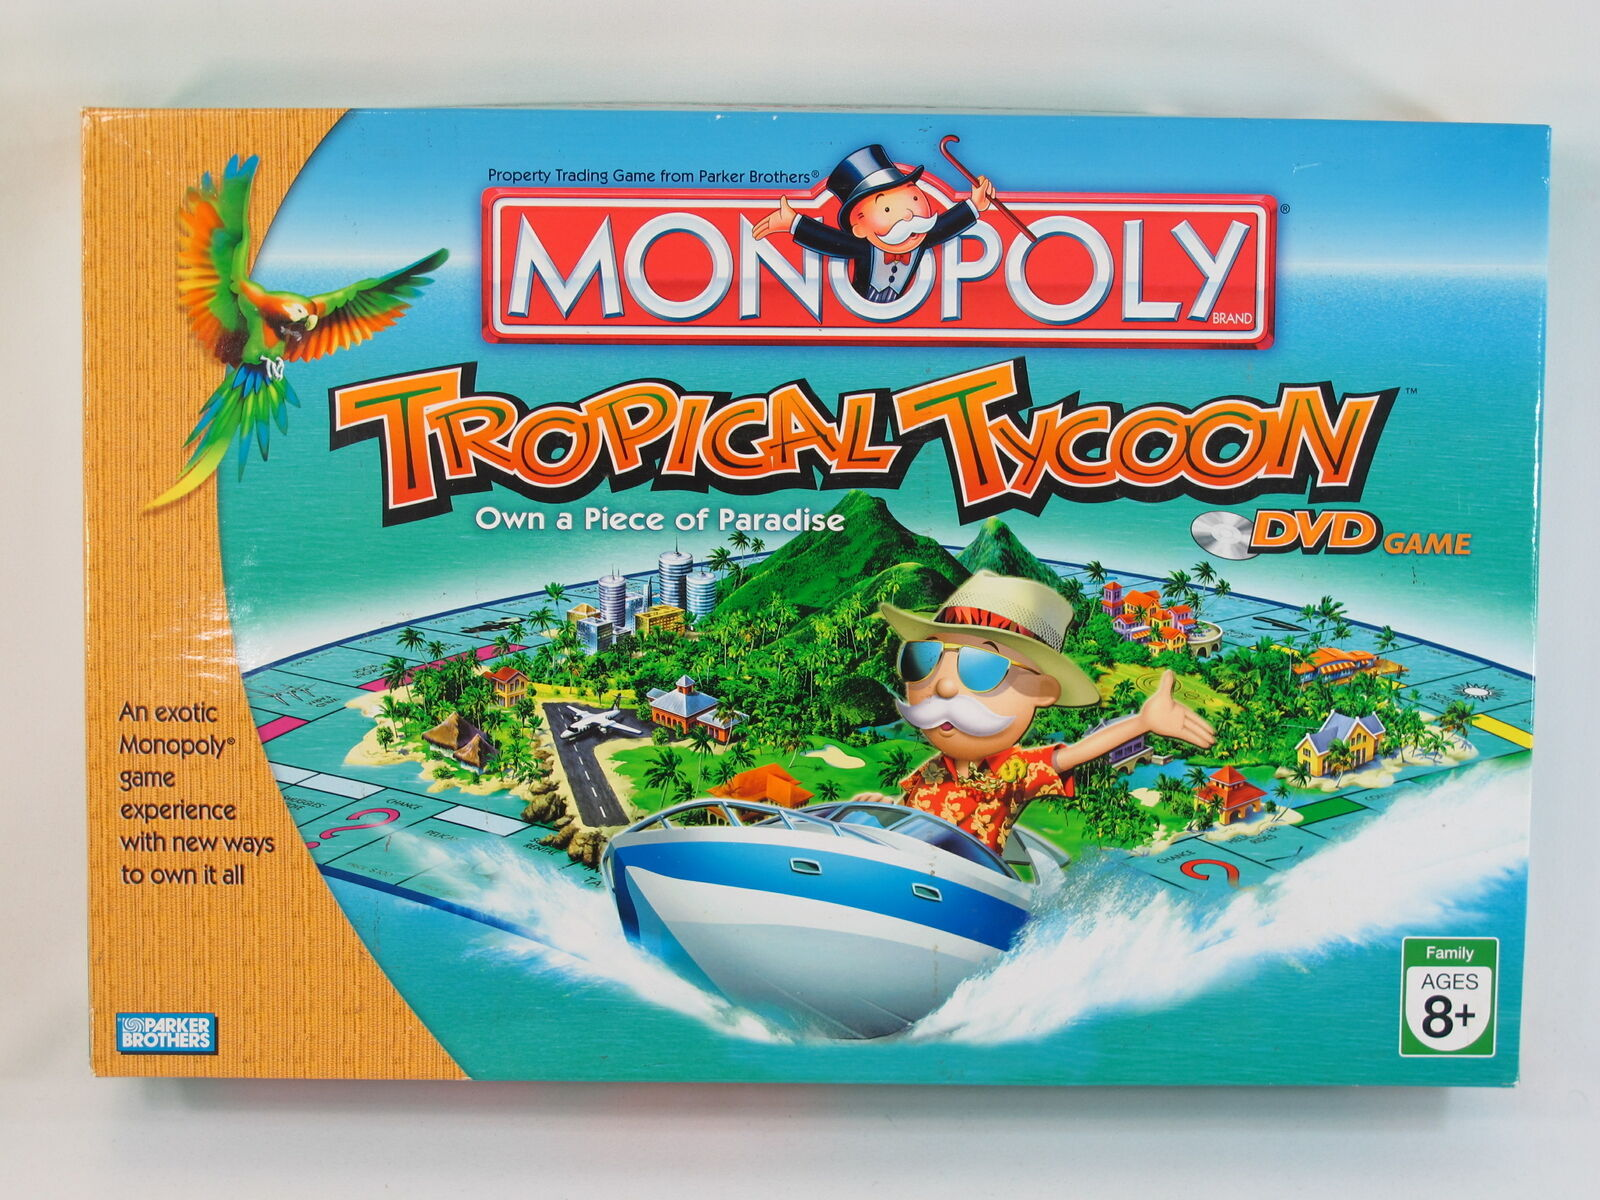 Monopoly Tropical Tycoon DVD Game 2007 Parker Brothers 100% Complete EUC - $30.21